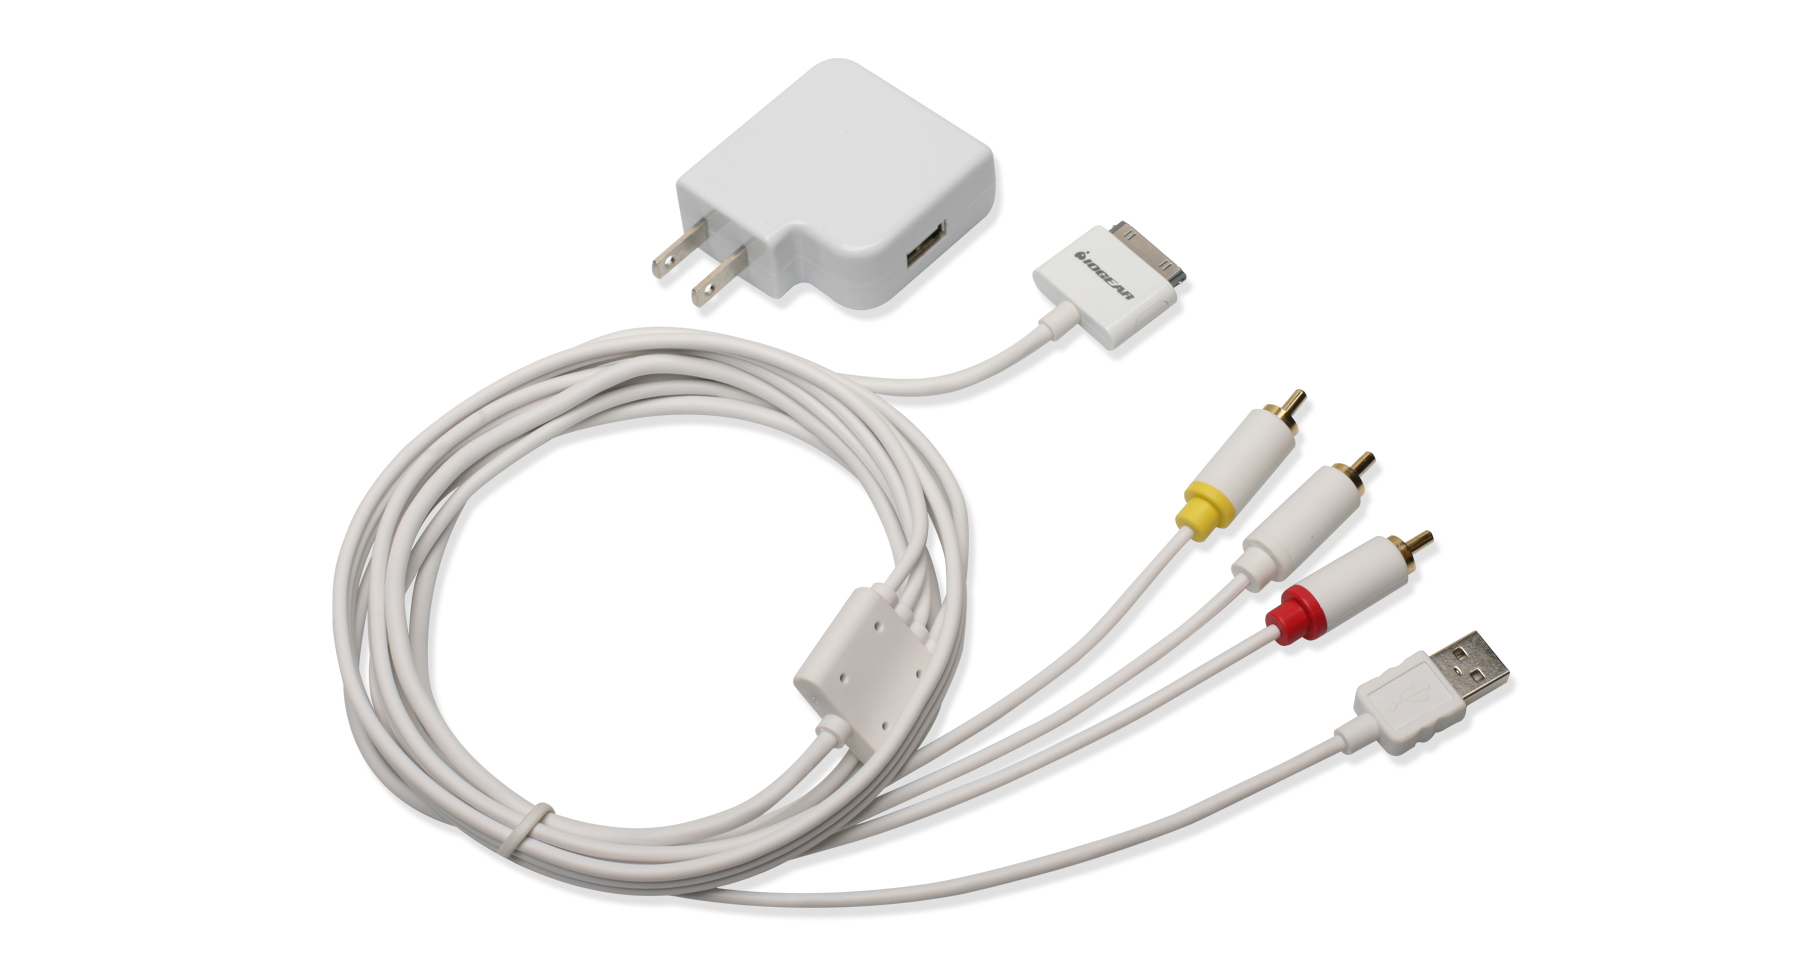 hight resolution of composite av cable with charge and sync for iphone ipod